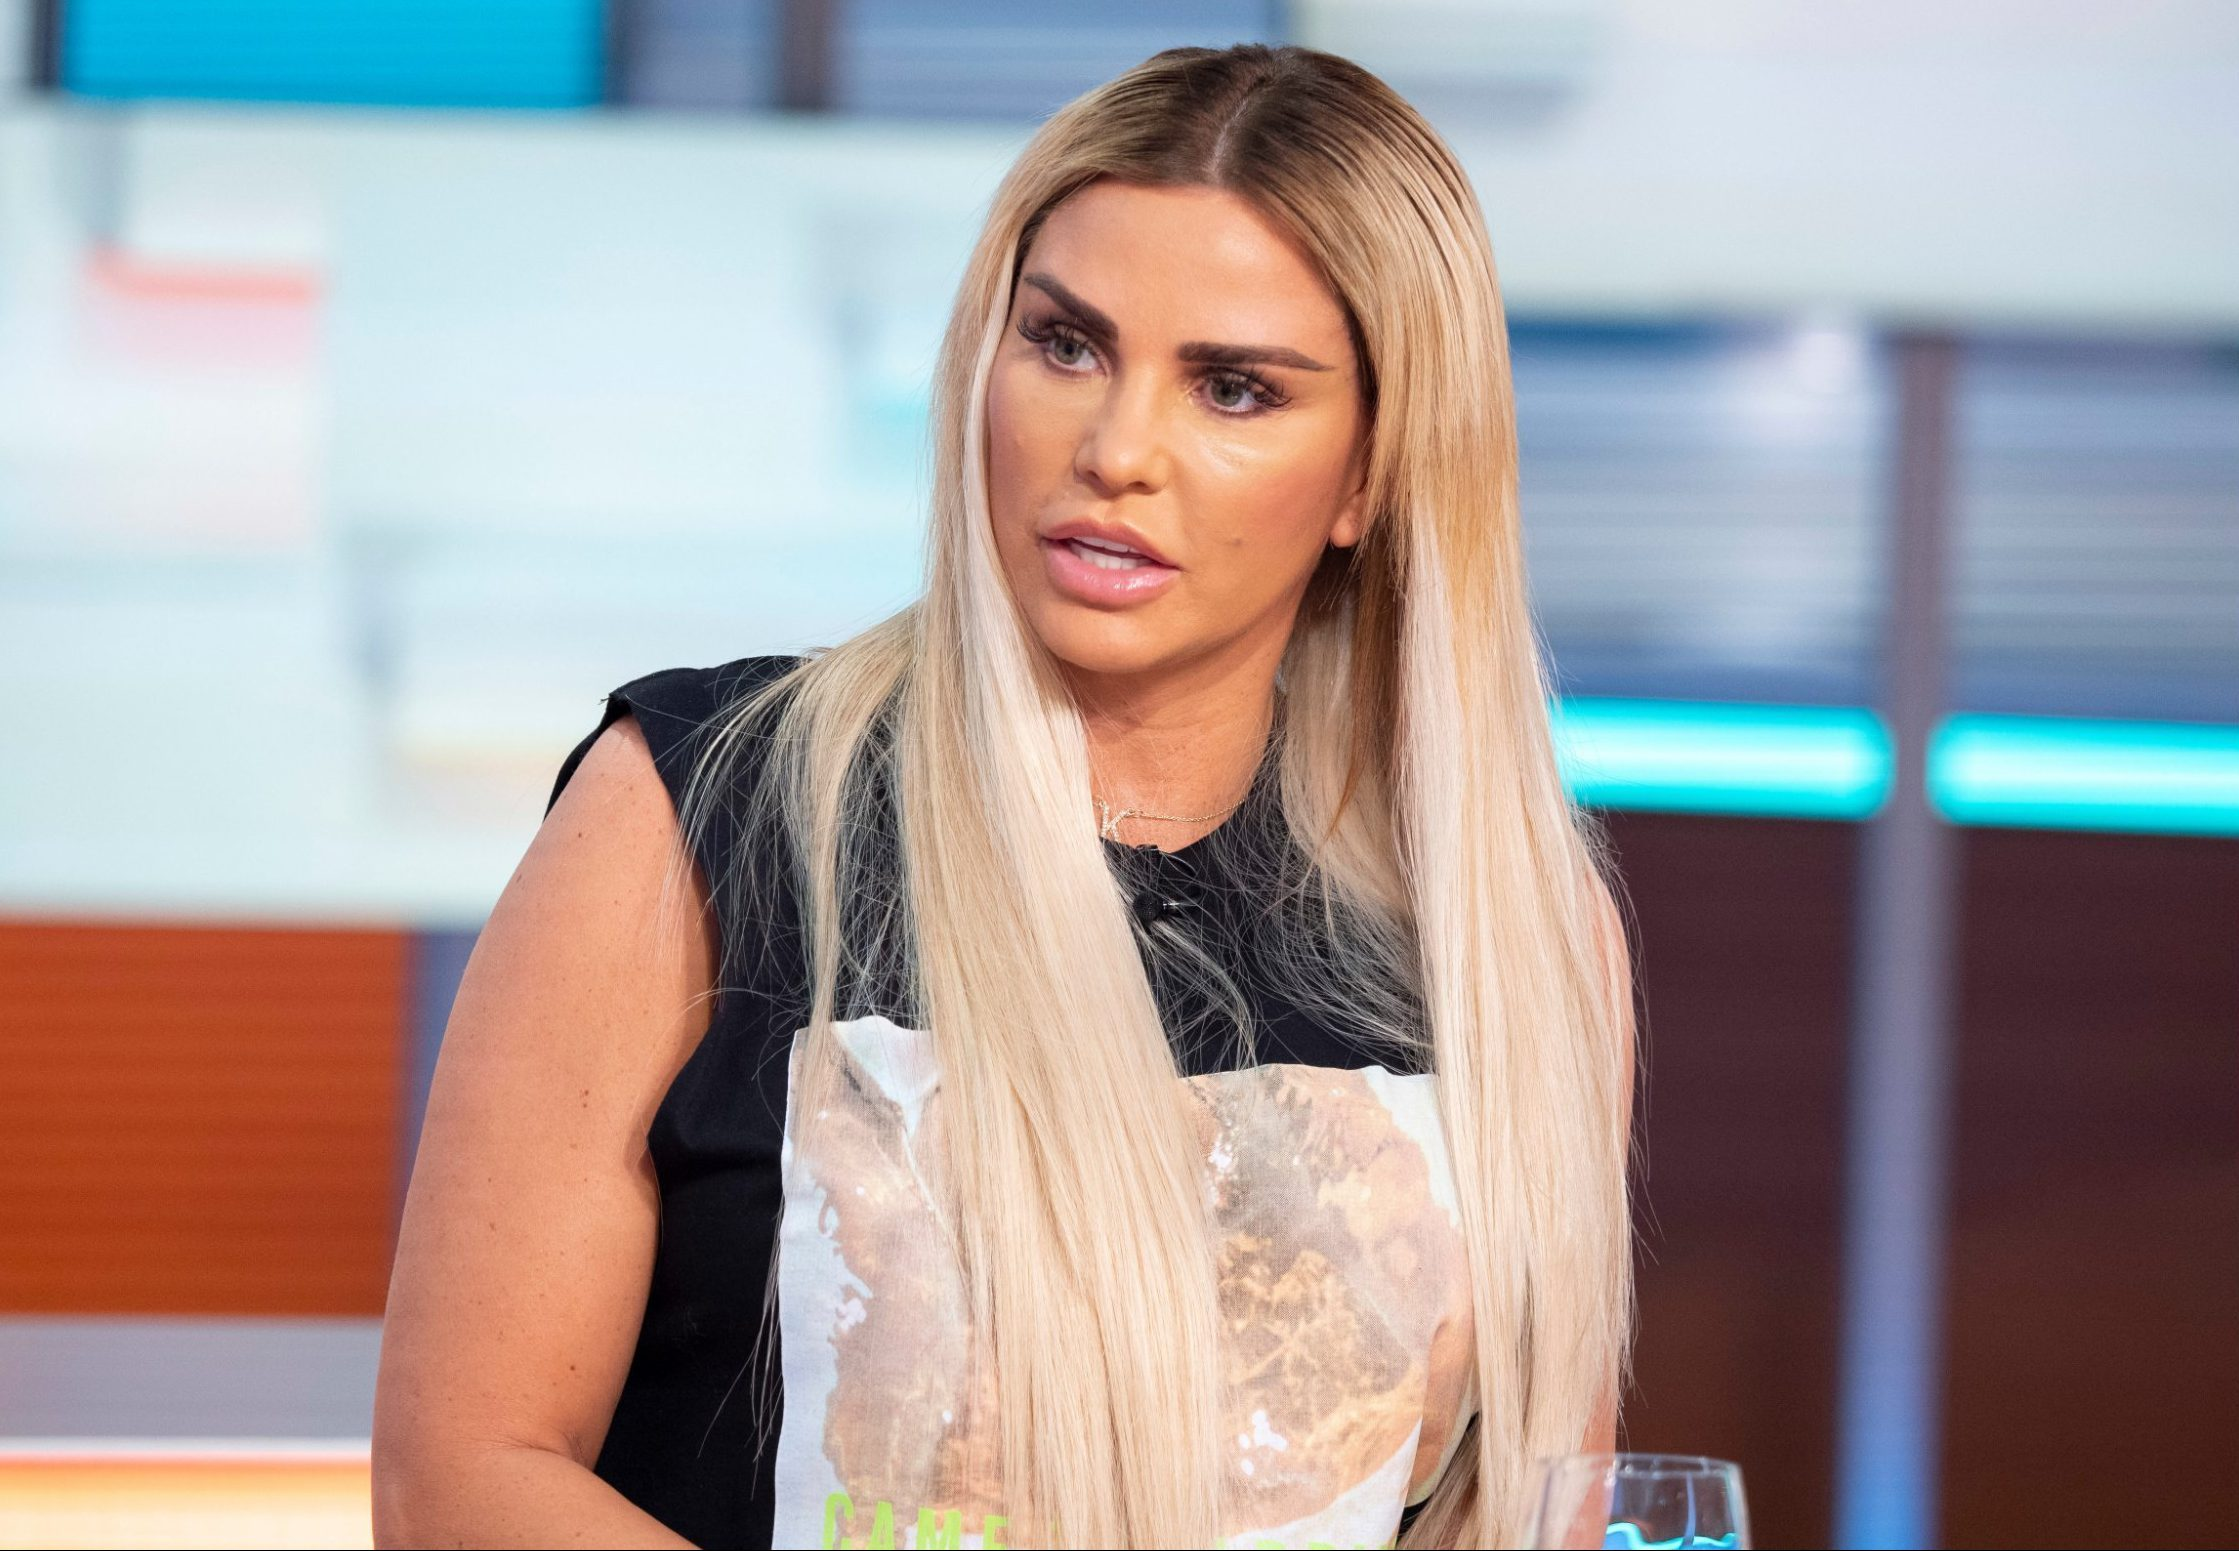 Katie Price training to be paramedic as she jokes 'I have seen many bits and bobs'